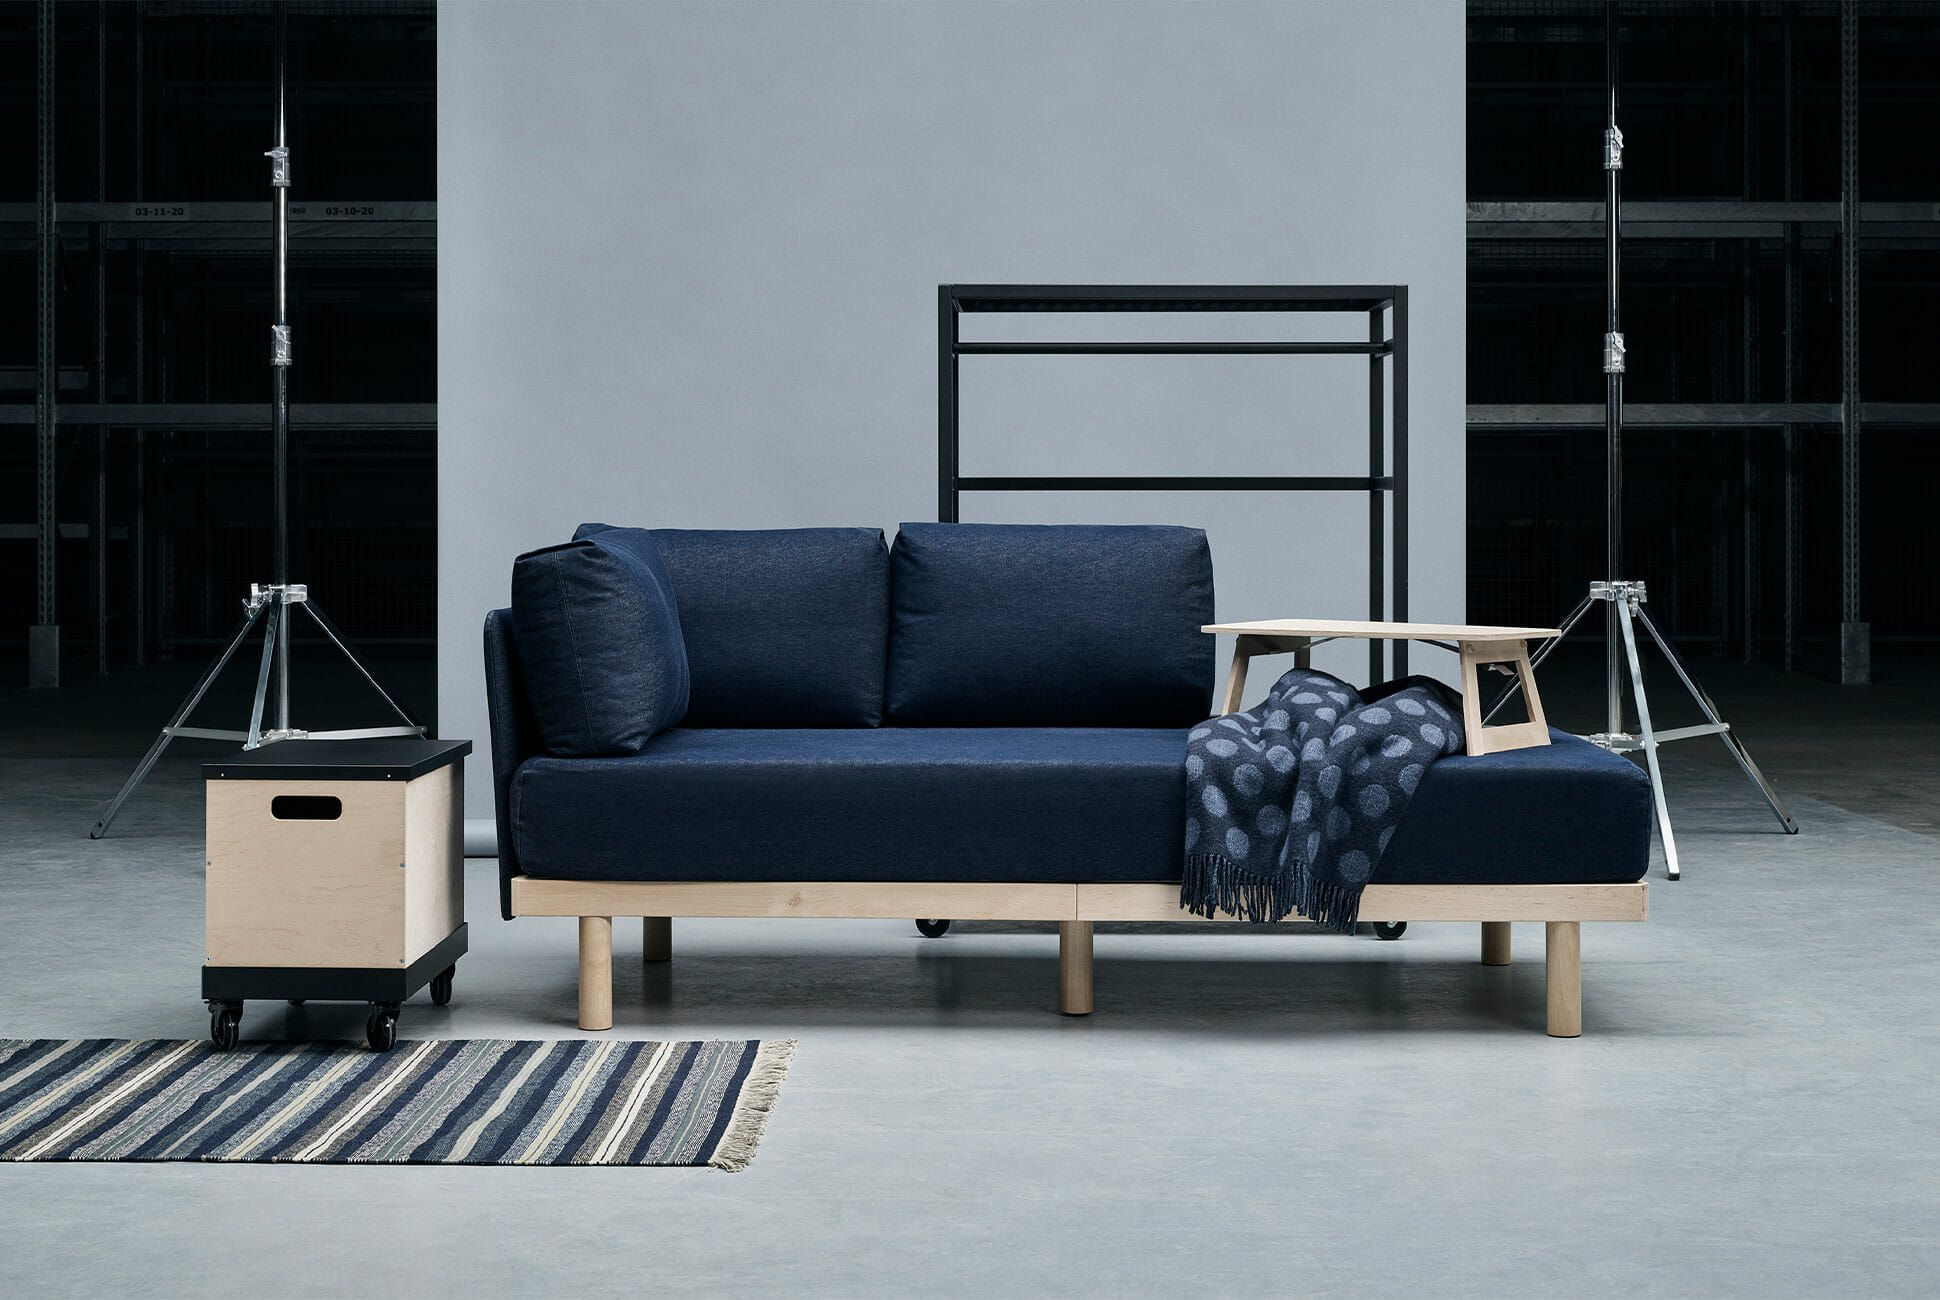 Ikea\'s New Collection of Furniture Is Made for Small ...